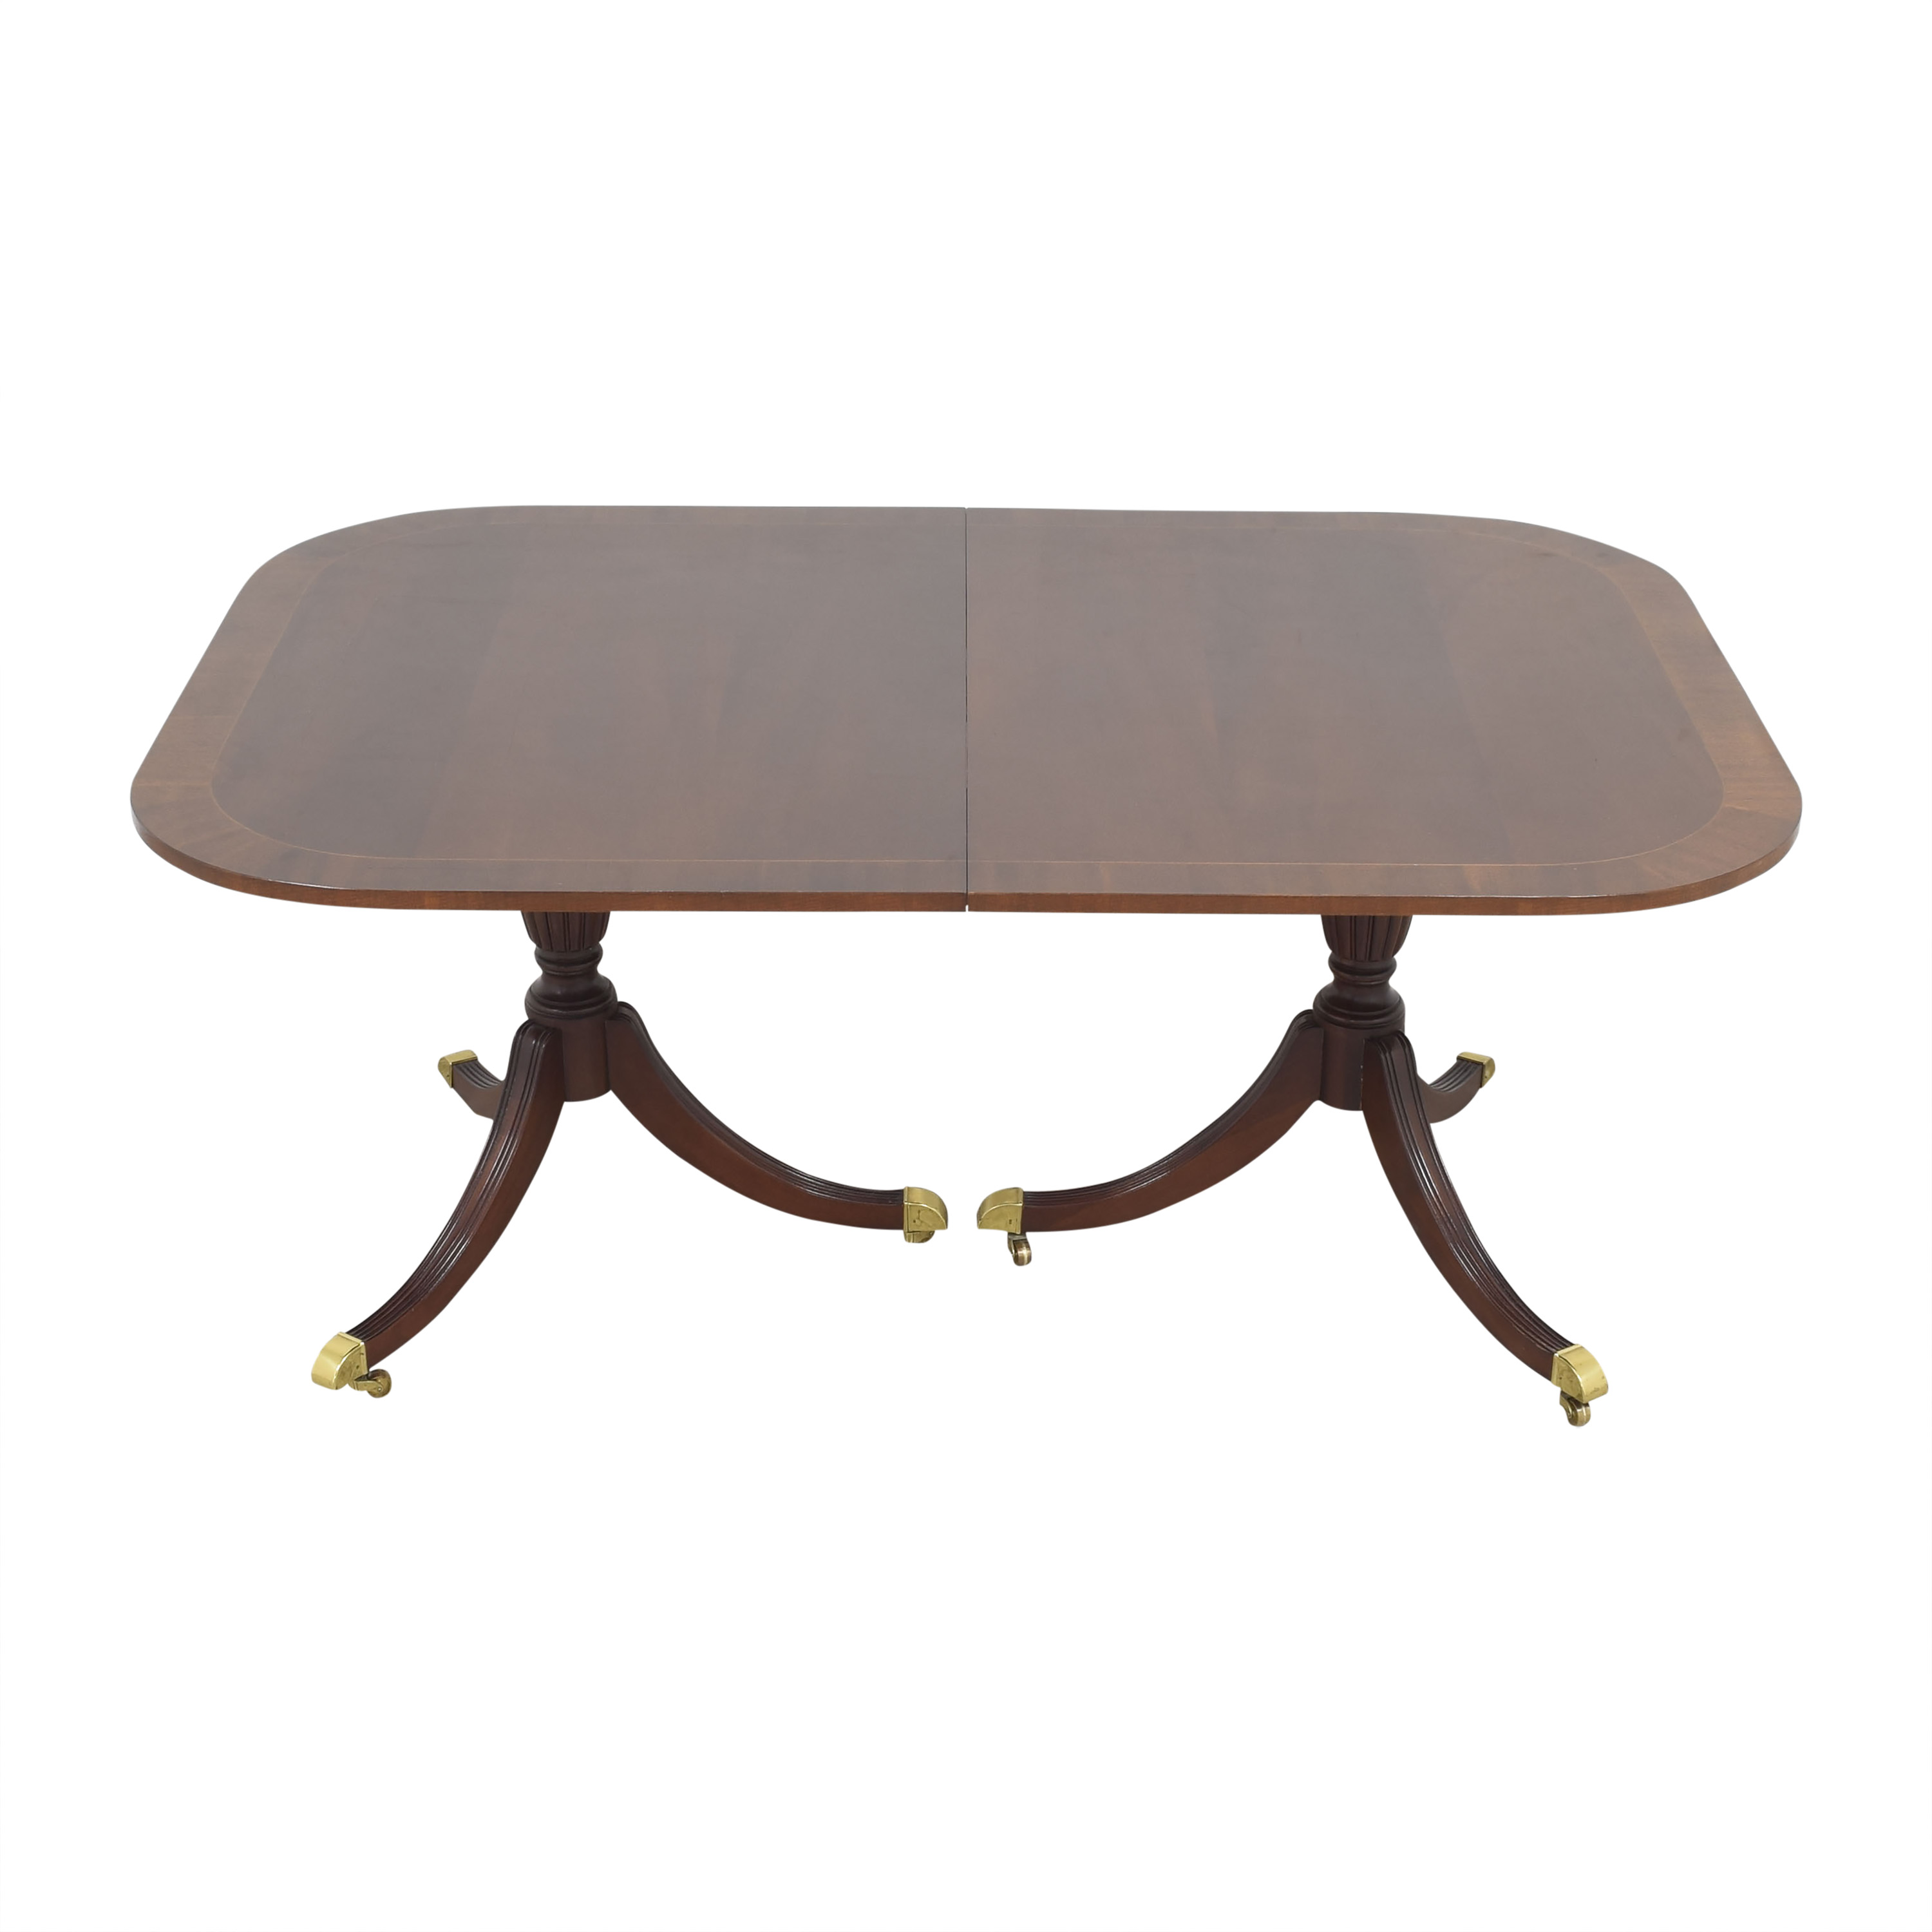 Councill Councill Extendable Dining Table on Casters discount